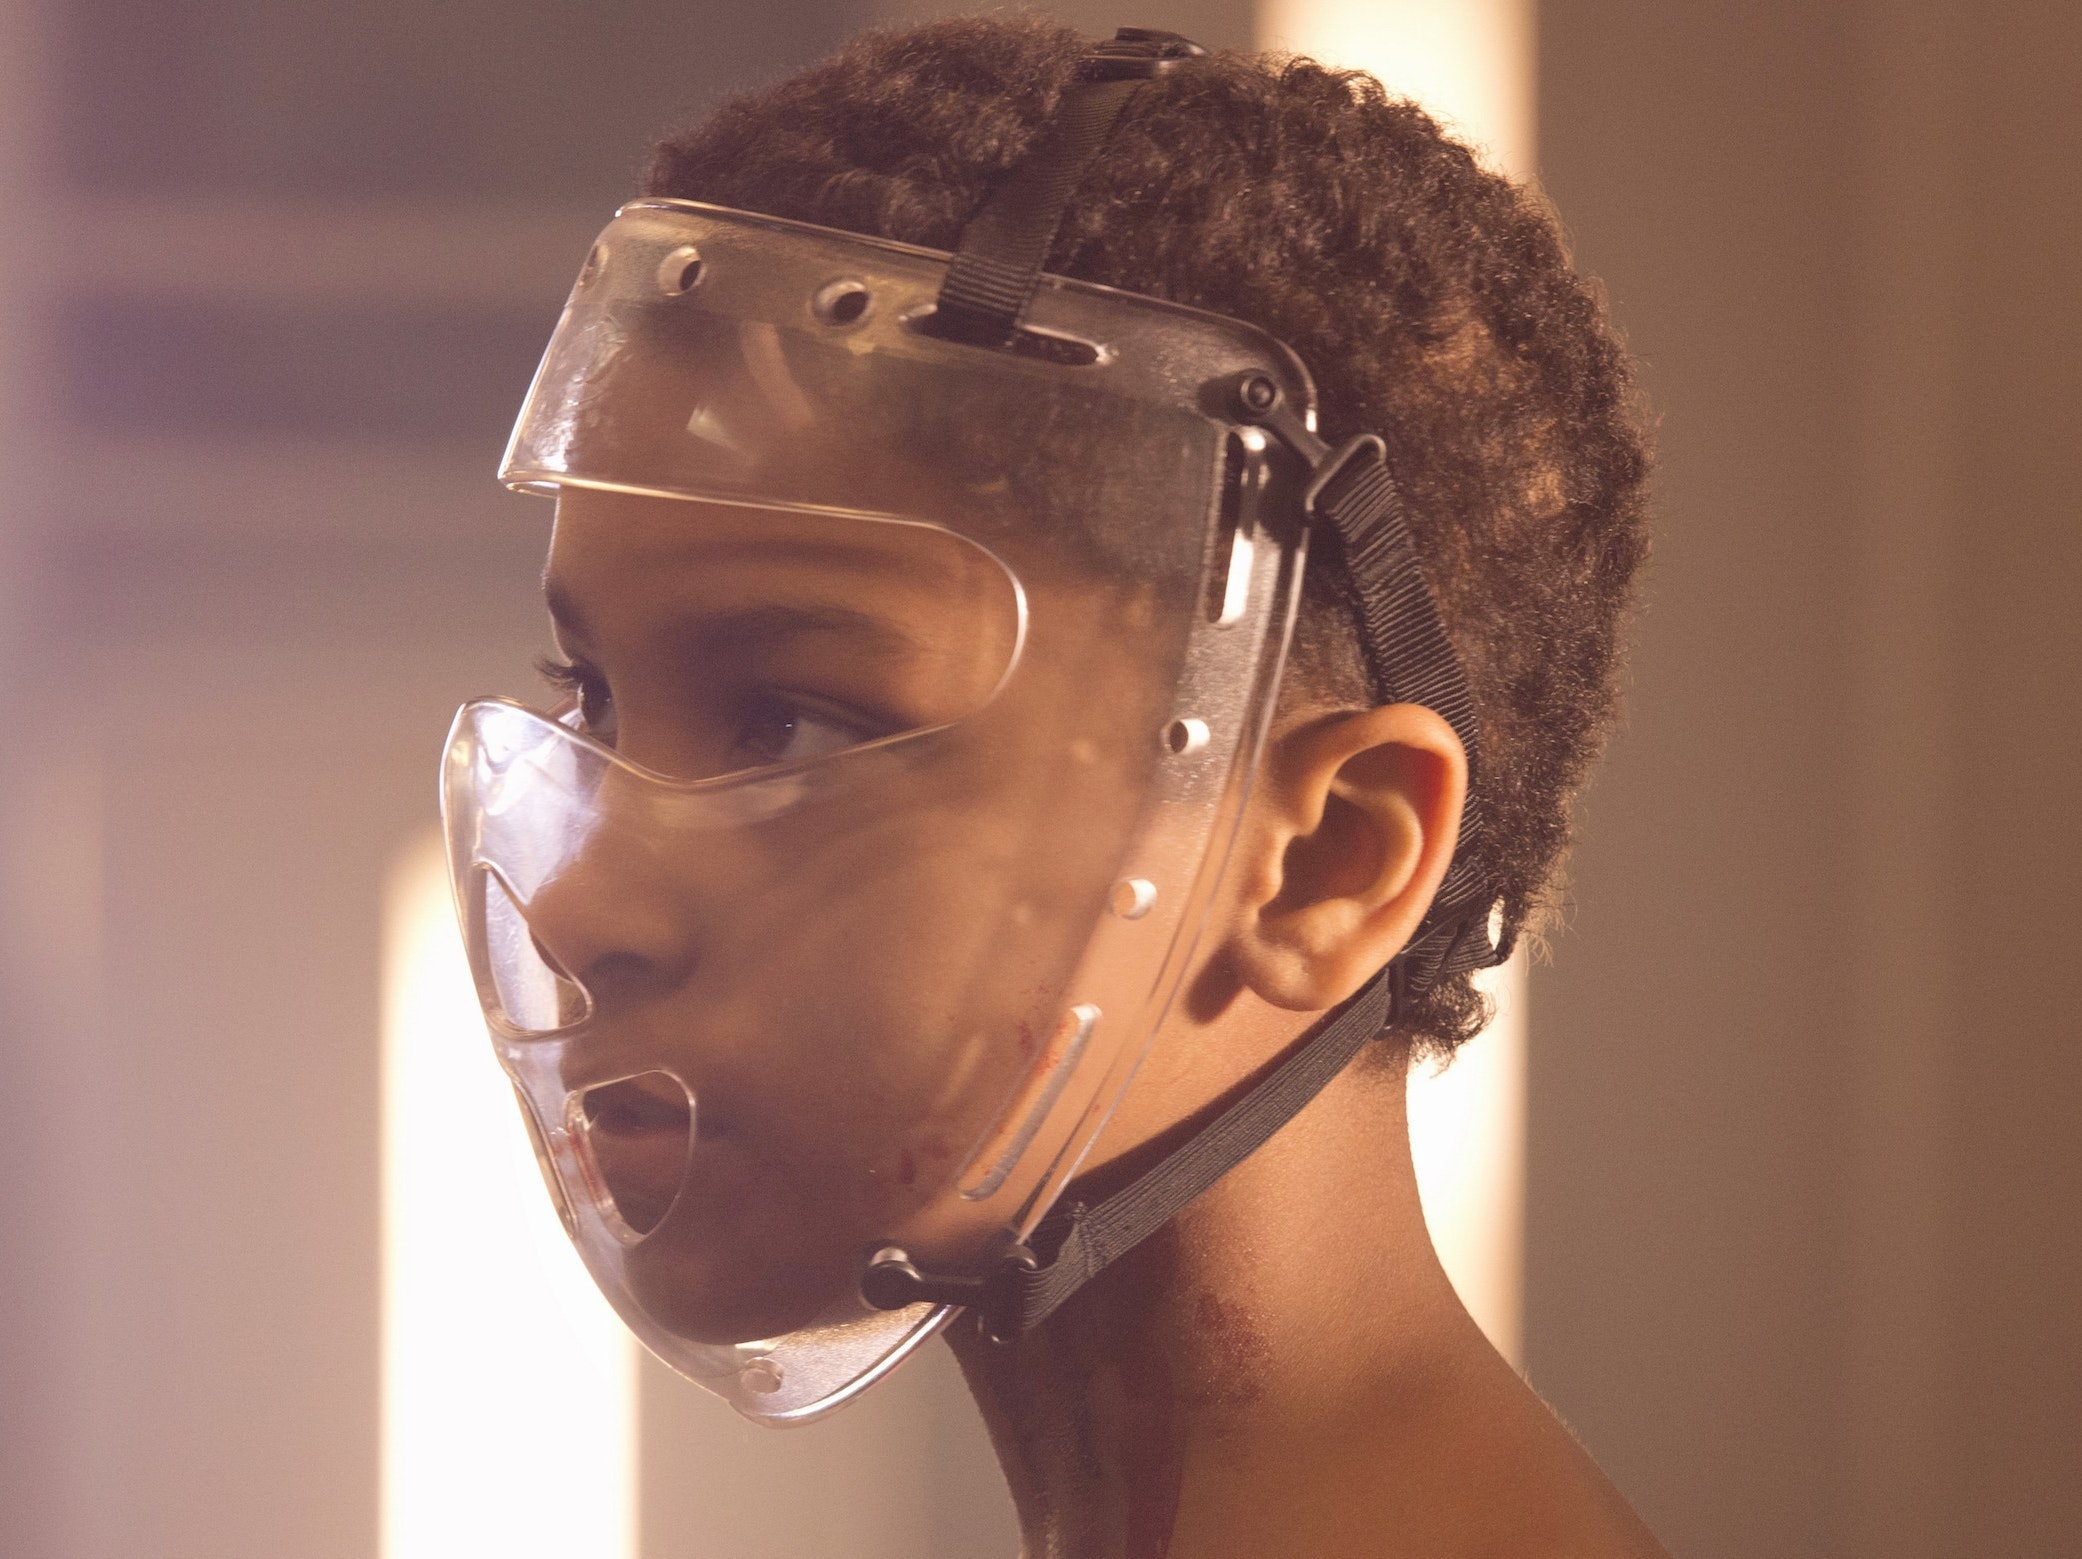 7 Independent, Lesser Known Sci-Fi Films to Watch in 2016